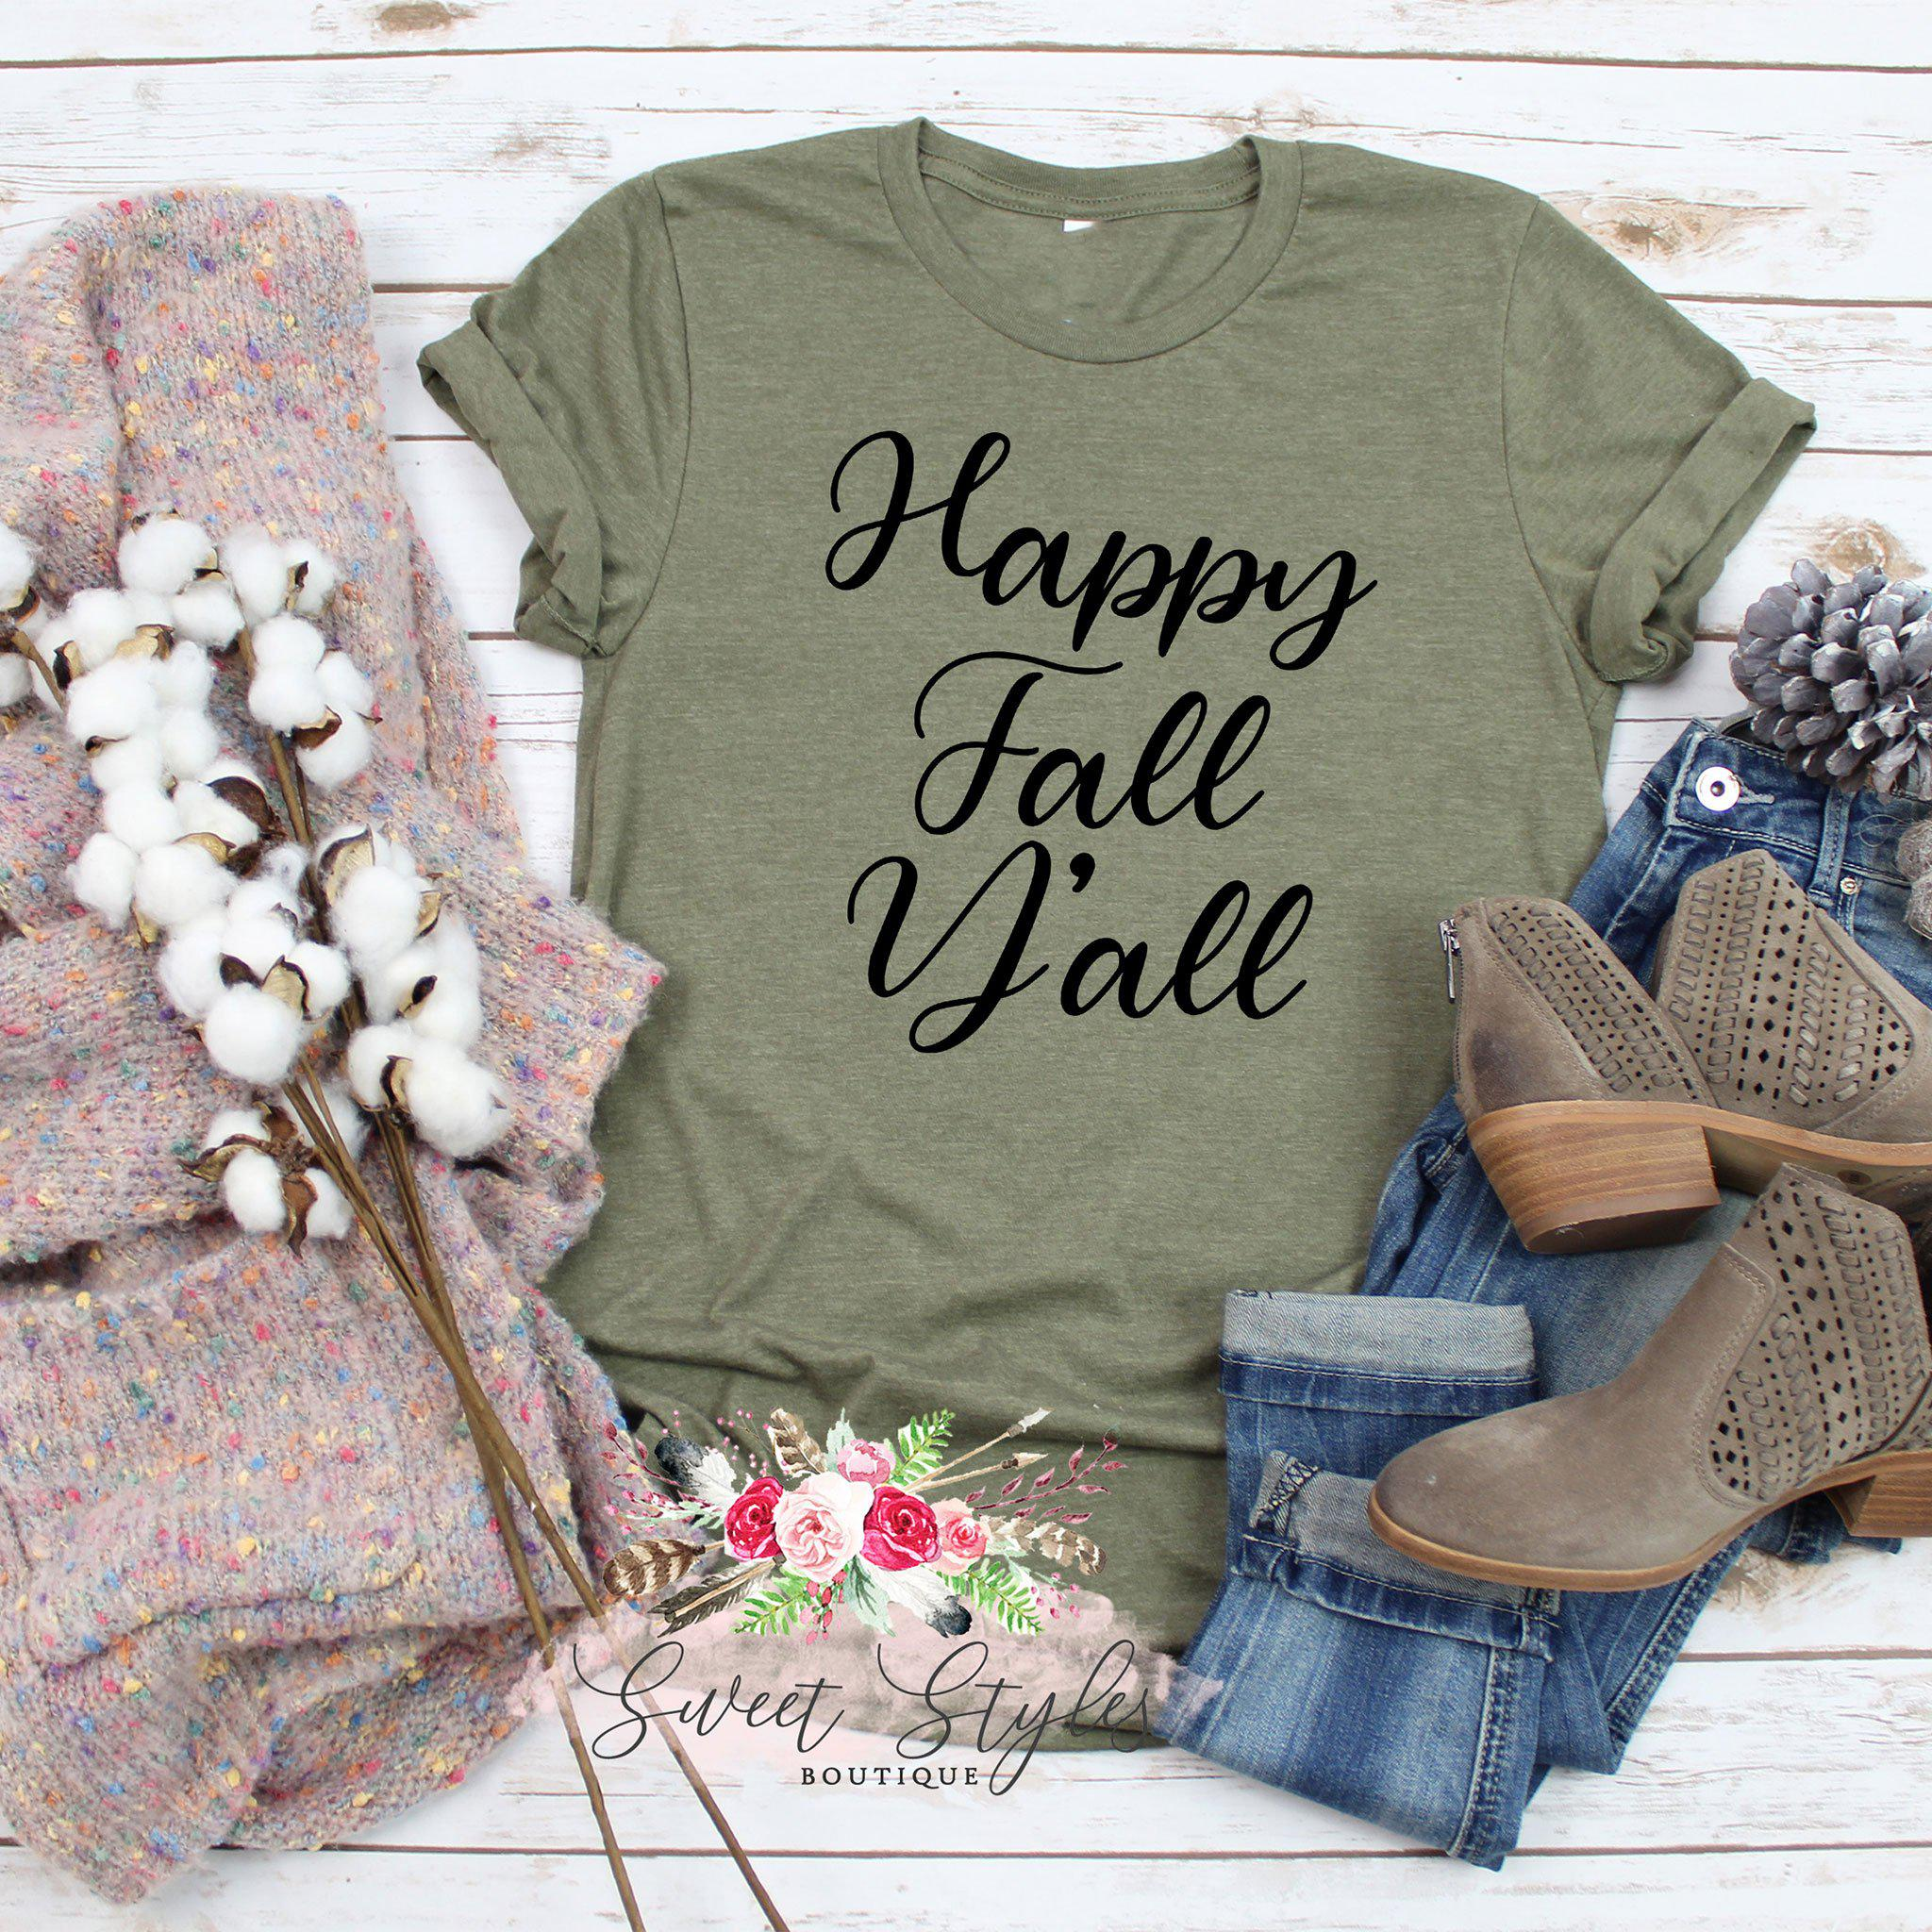 Happy fall y'all T-shirt-Sweet Styles boutique